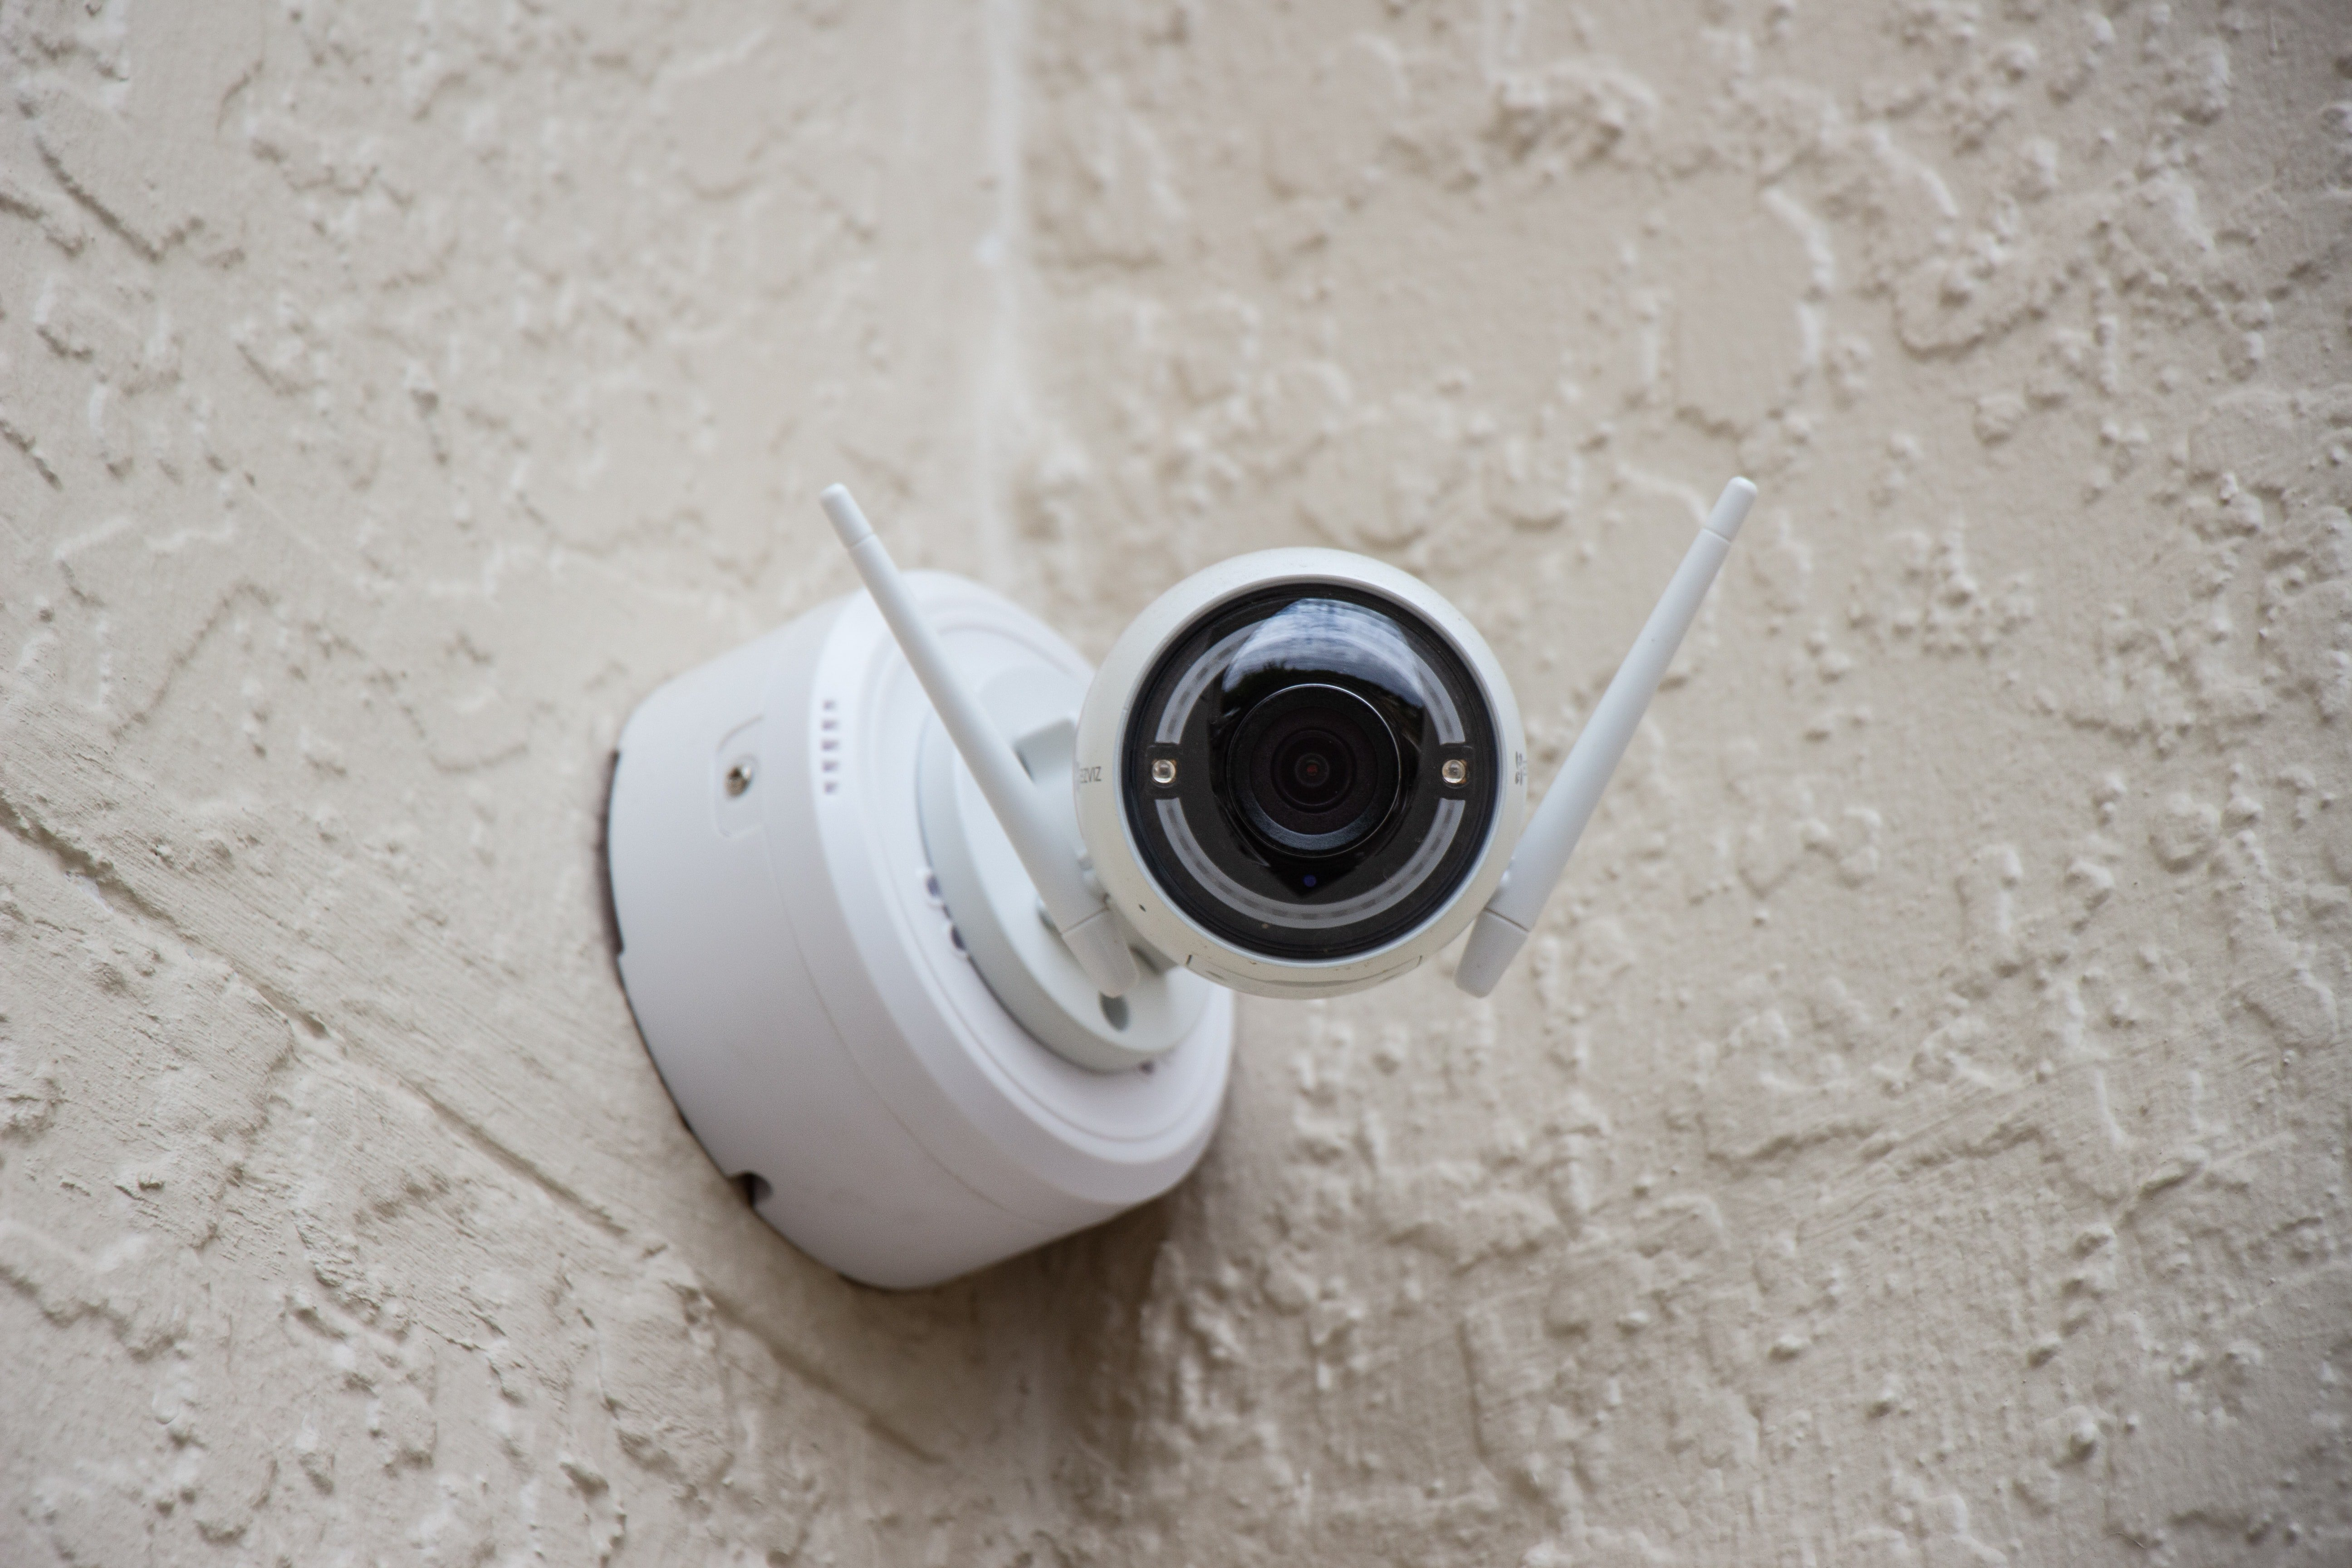 James installed security cameras to keep a check on Harry | Photo: Unsplash